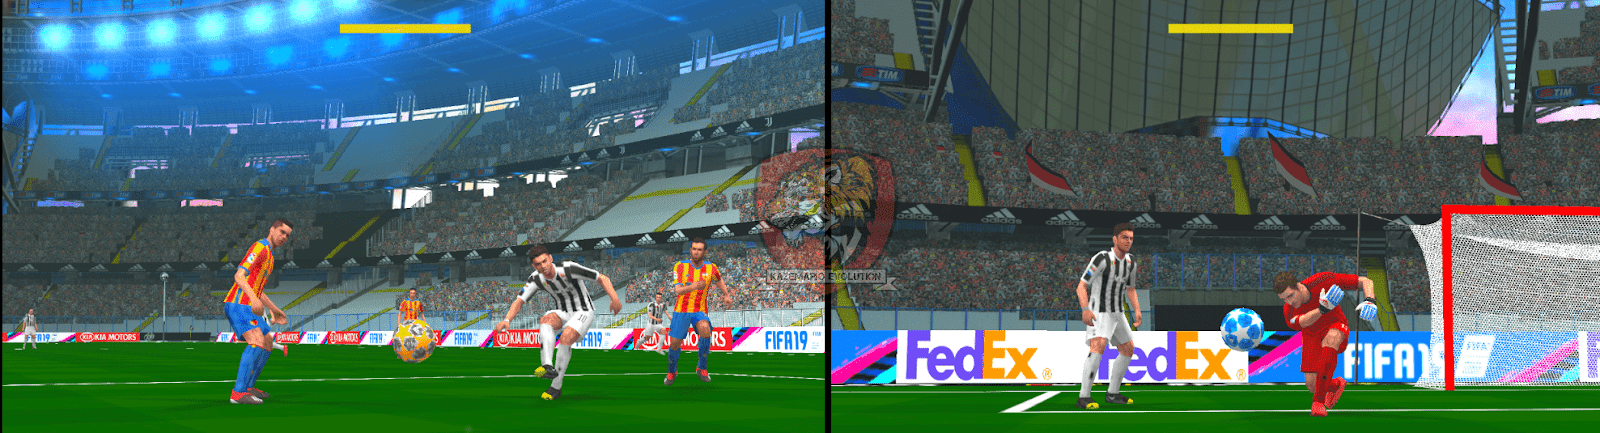 2f76978d9 Adidas Uefa Champions League 2018 19 Ballpack Pes 2014 Psp (Ppsspp ...